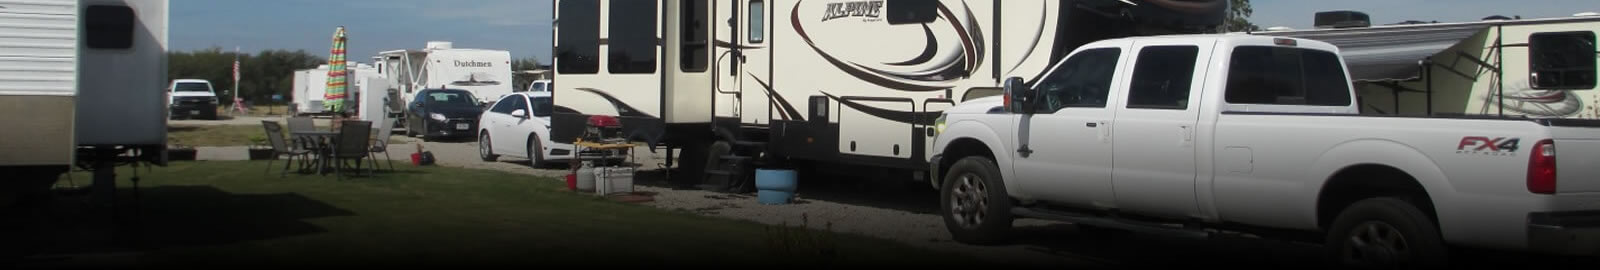 , RV Storage and Boat Storage Pilot Point Texas